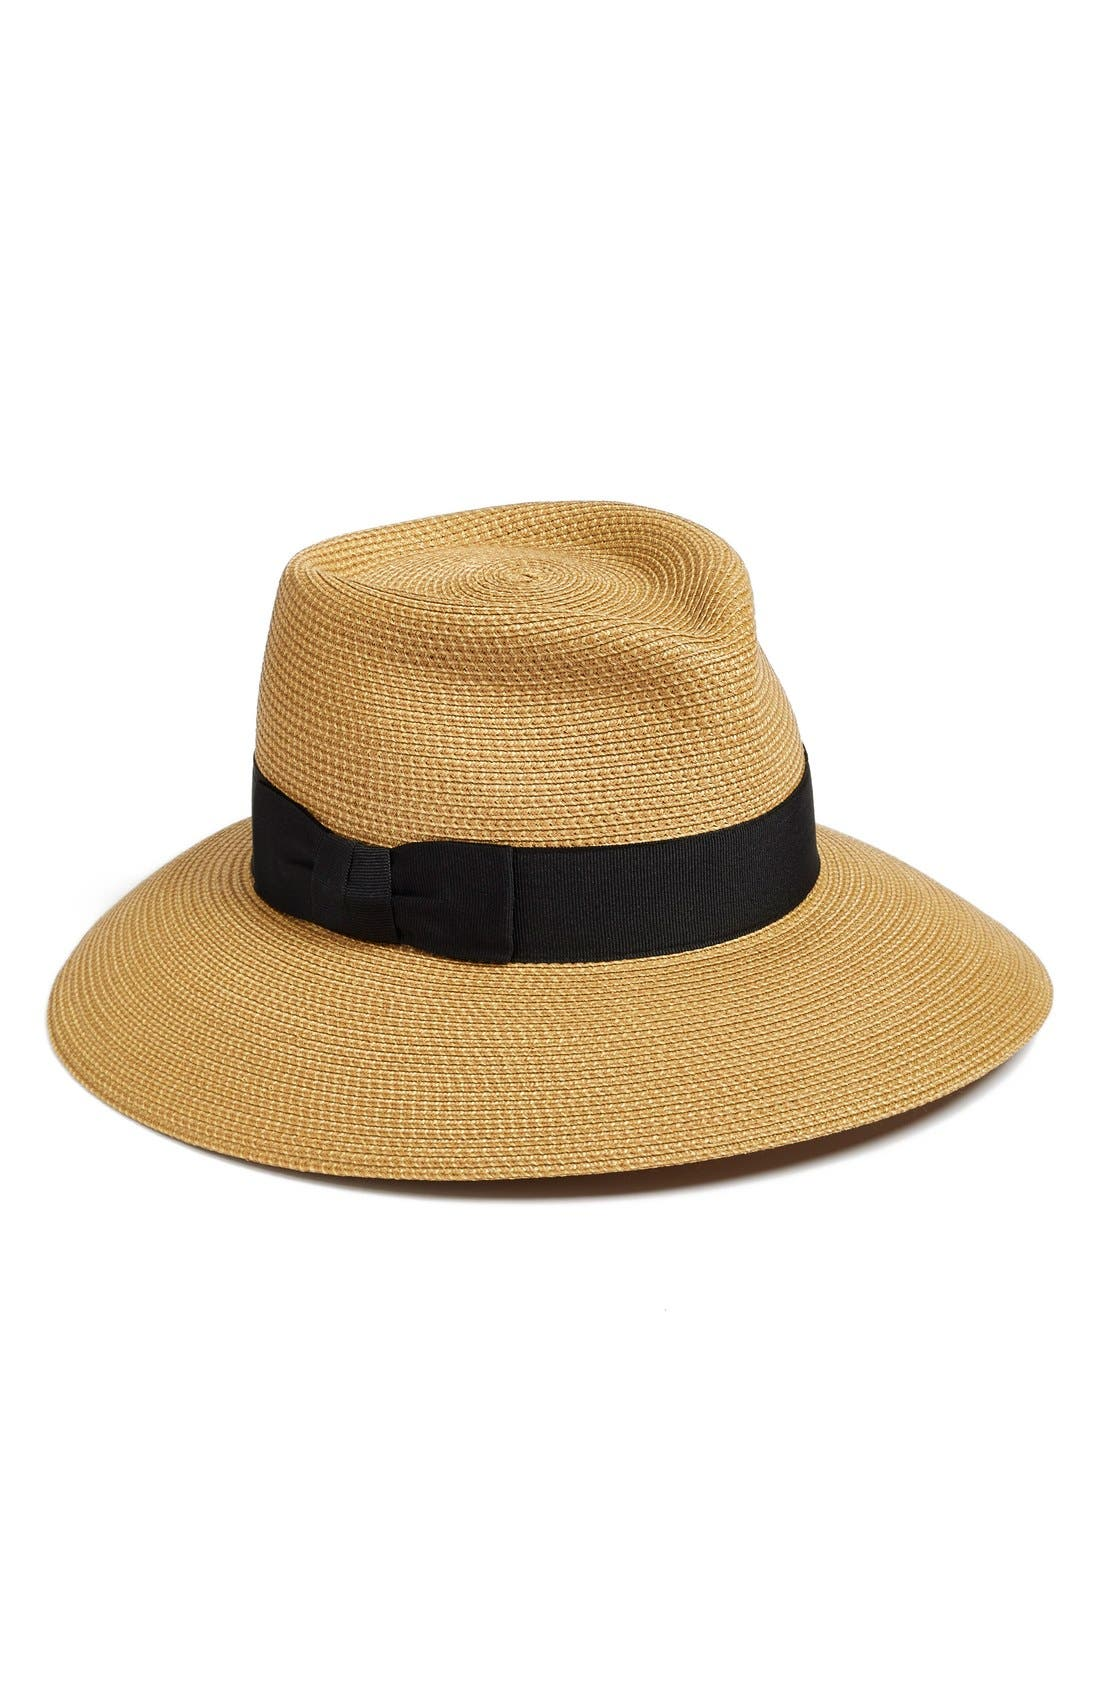 'Phoenix' Packable Fedora Sun Hat,                         Main,                         color, NATURAL/ BLACK